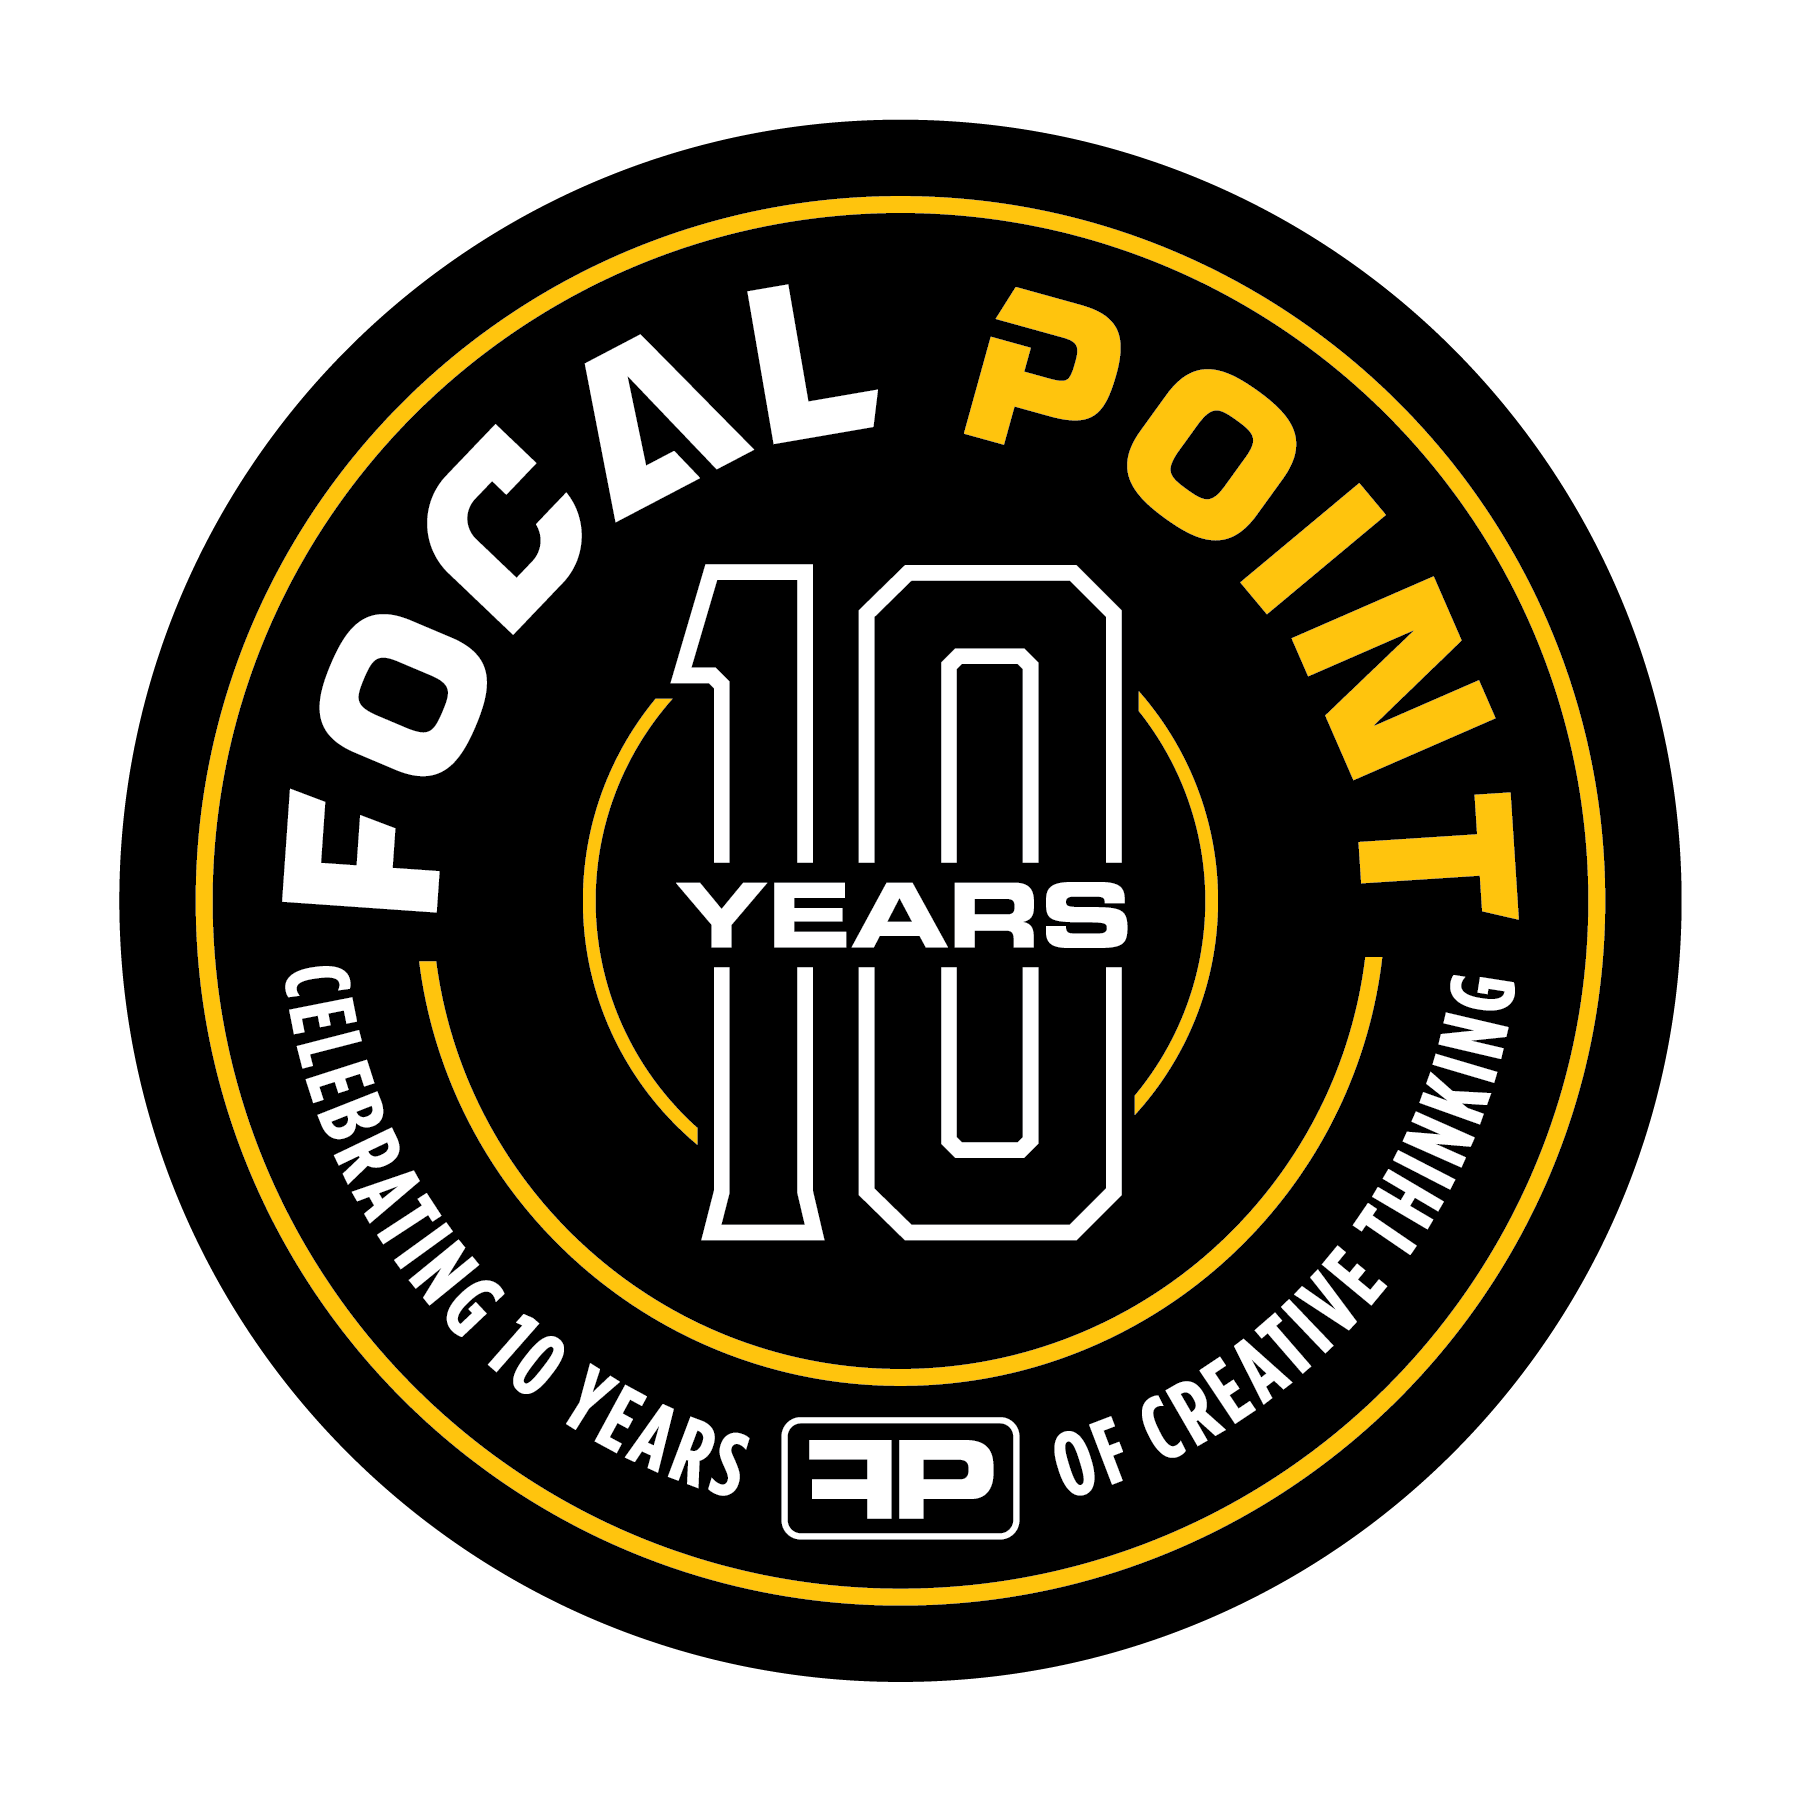 FP 10Years Seal Patch 4C - Rebranding a Branding Agency: Part I